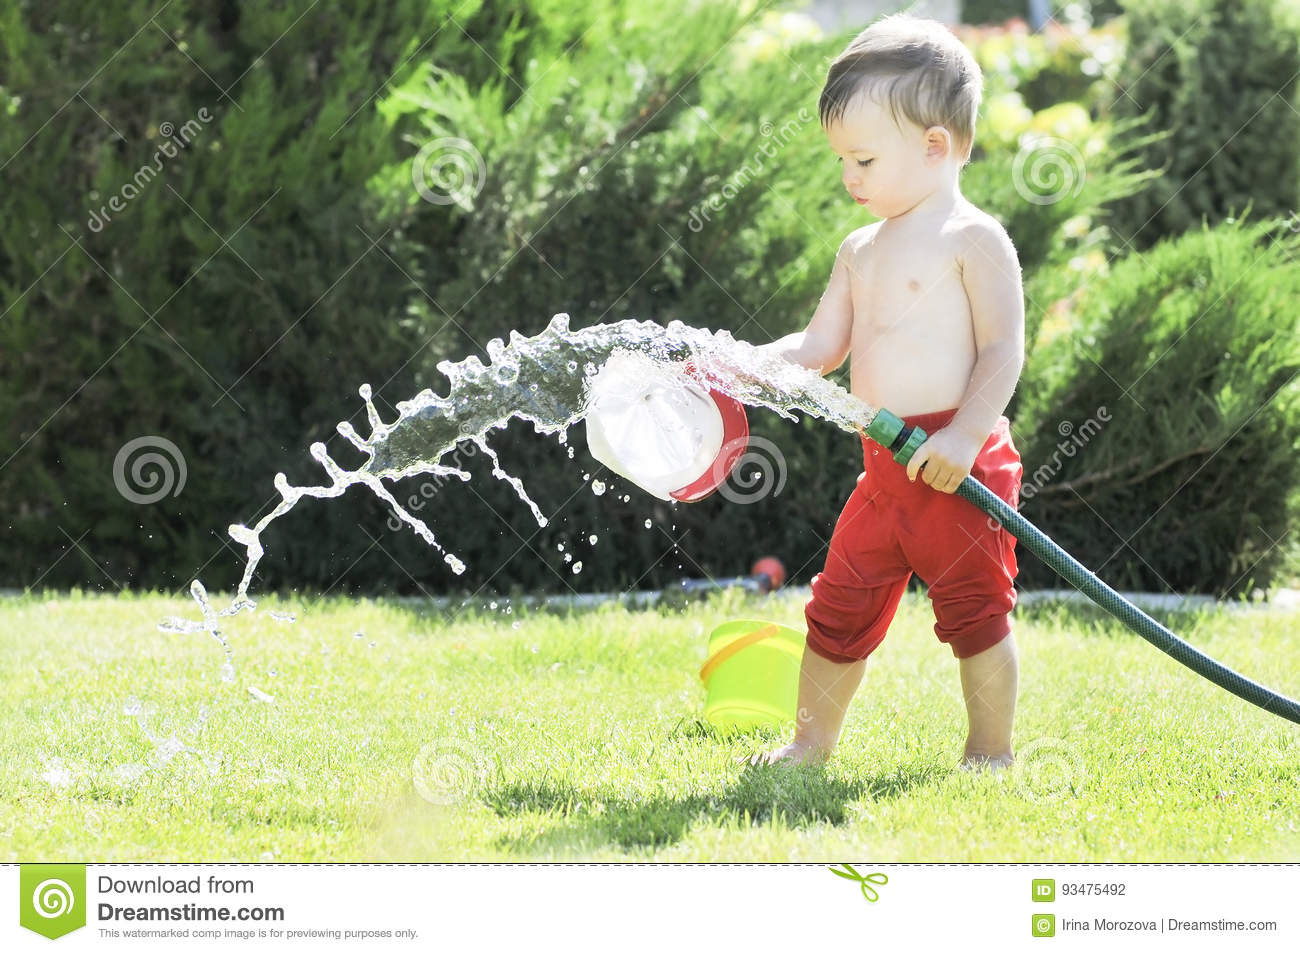 Little boy pours from a hose in the garden on a hot summer day on a green lawn, splashing water